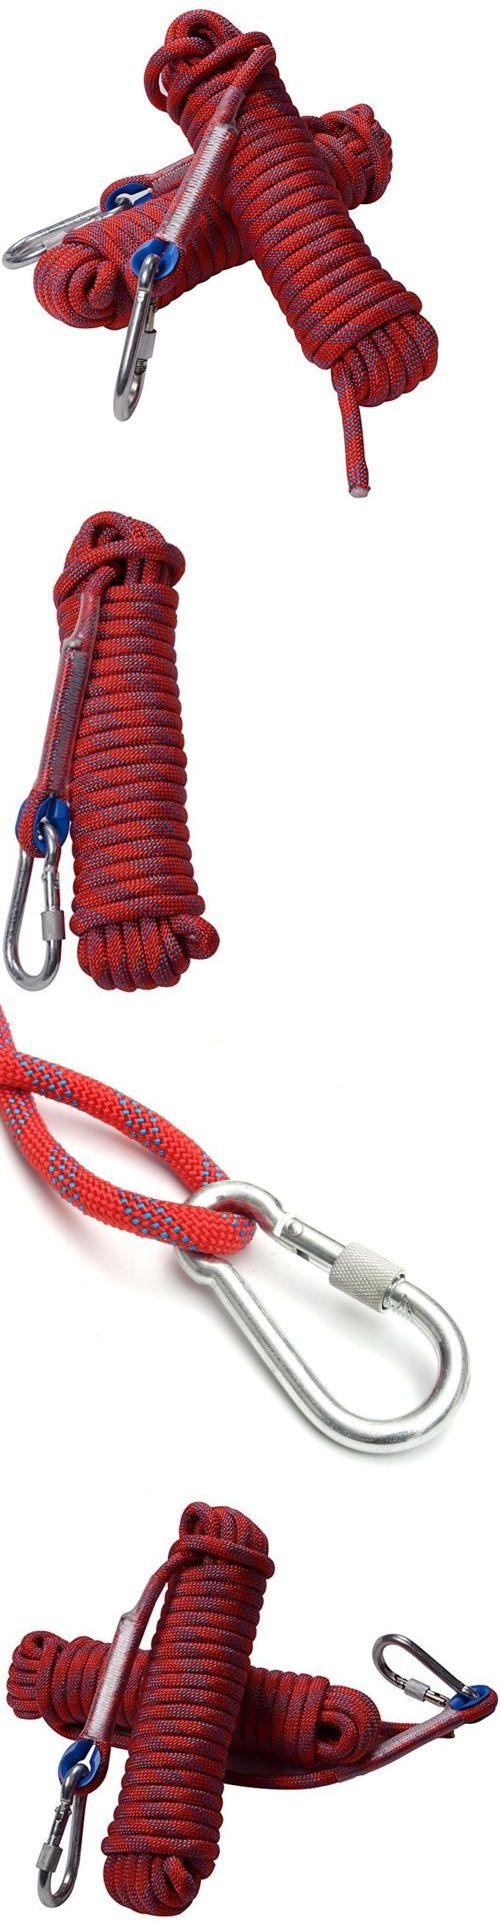 Ropes Cords and Slings 50816: Rock Climbing Rope, 12Mm Diameter Outdoor Hiking Accessories High Strength Cord -> BUY IT NOW ONLY: $45.14 on eBay!